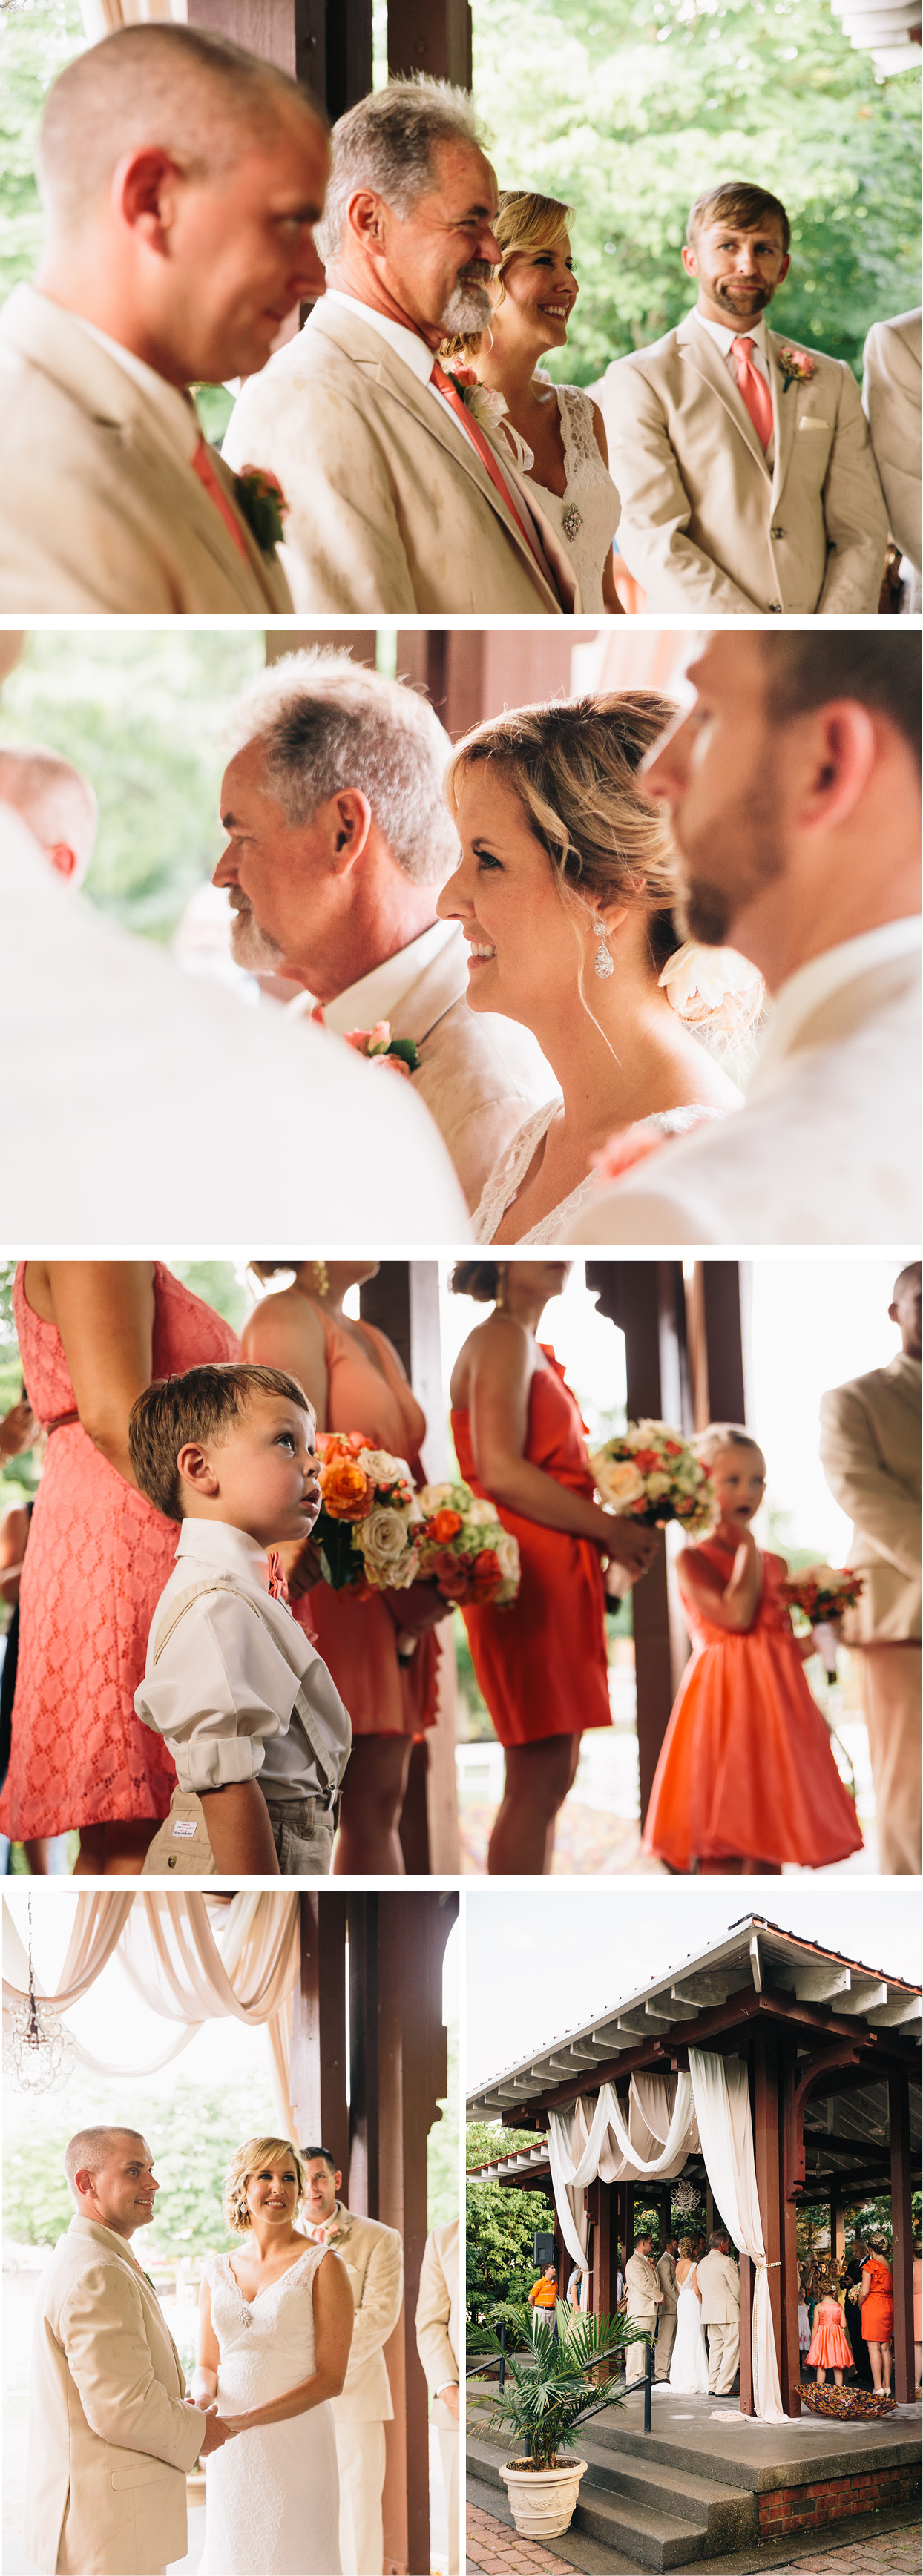 CK-Photo-Nashville-wedding-photography-bd7.jpg